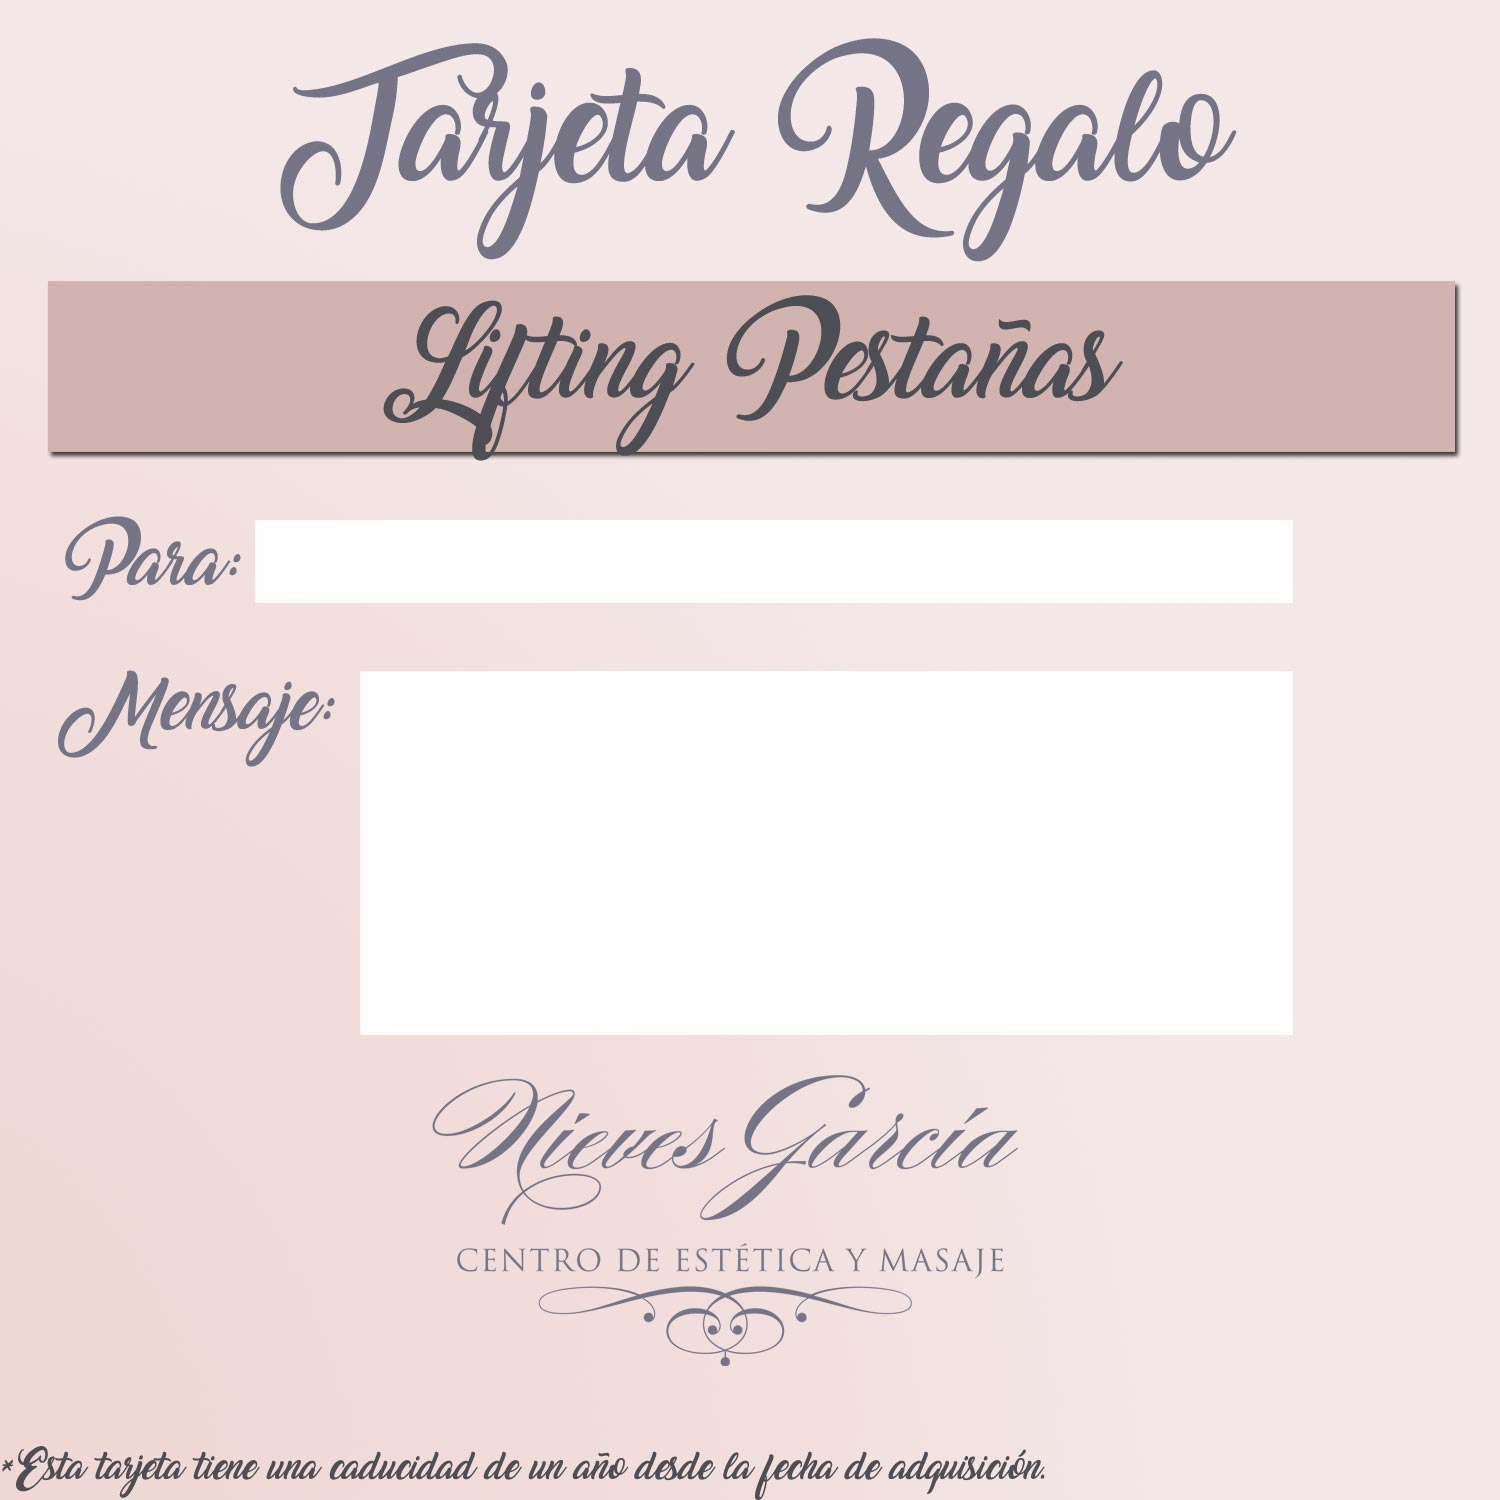 Tarjeta regalo lifting pesta as est tica nieves for Eyelash extension gift certificate template